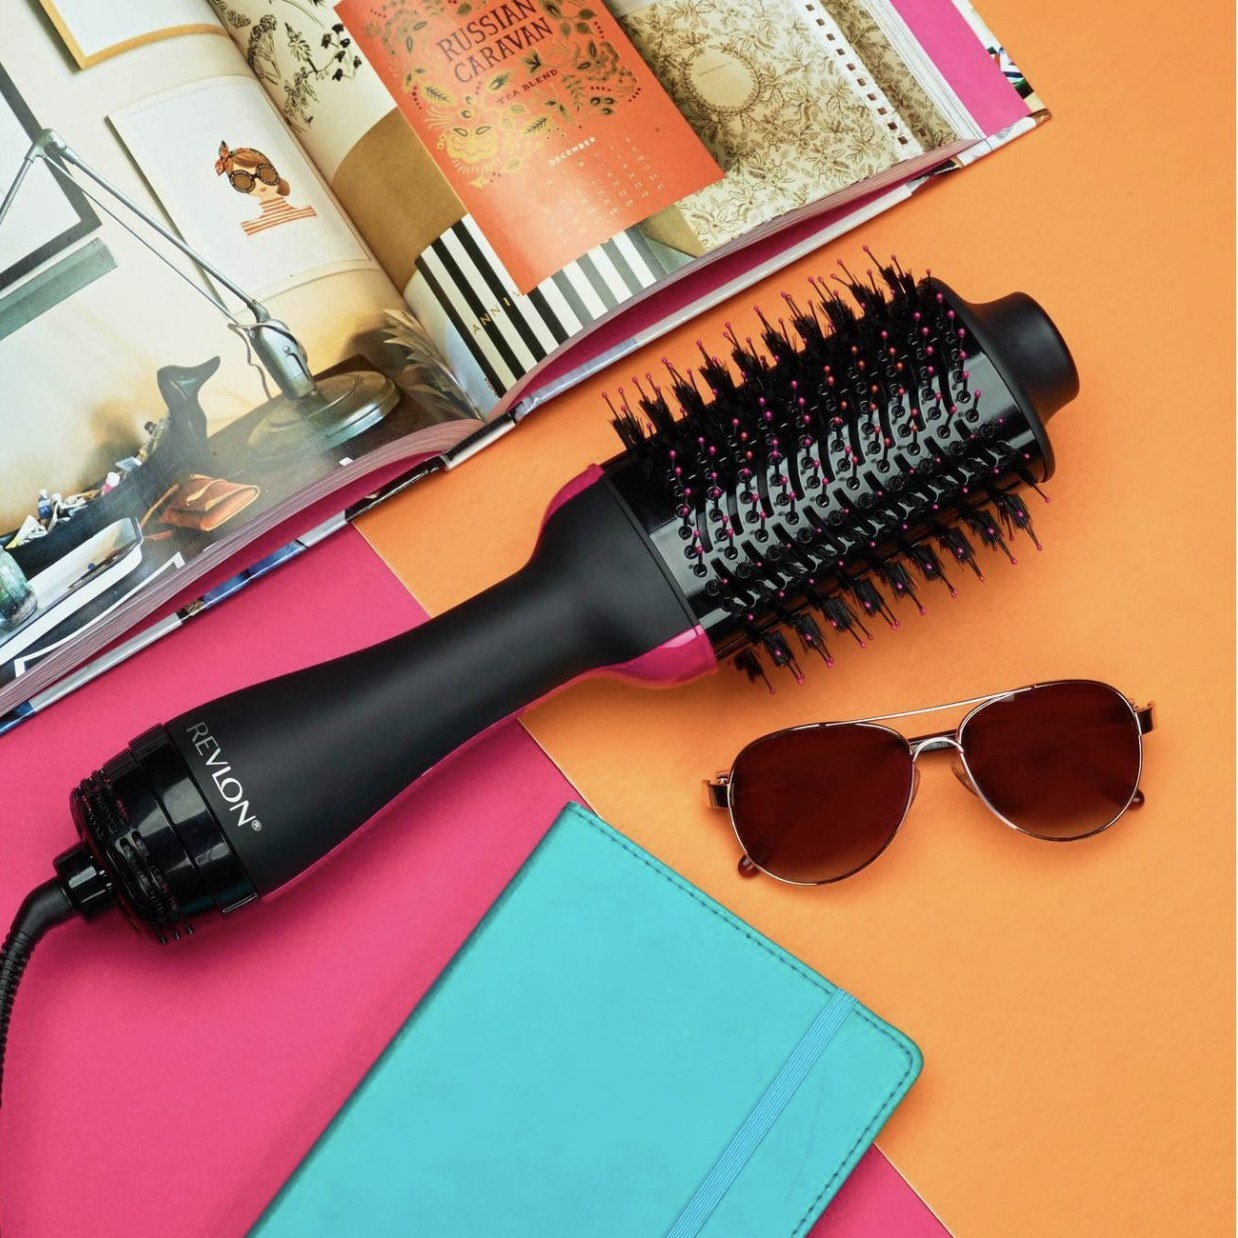 An electric round blow dryer hair brush on a colorful backdrop next to a notebook and sunglasses